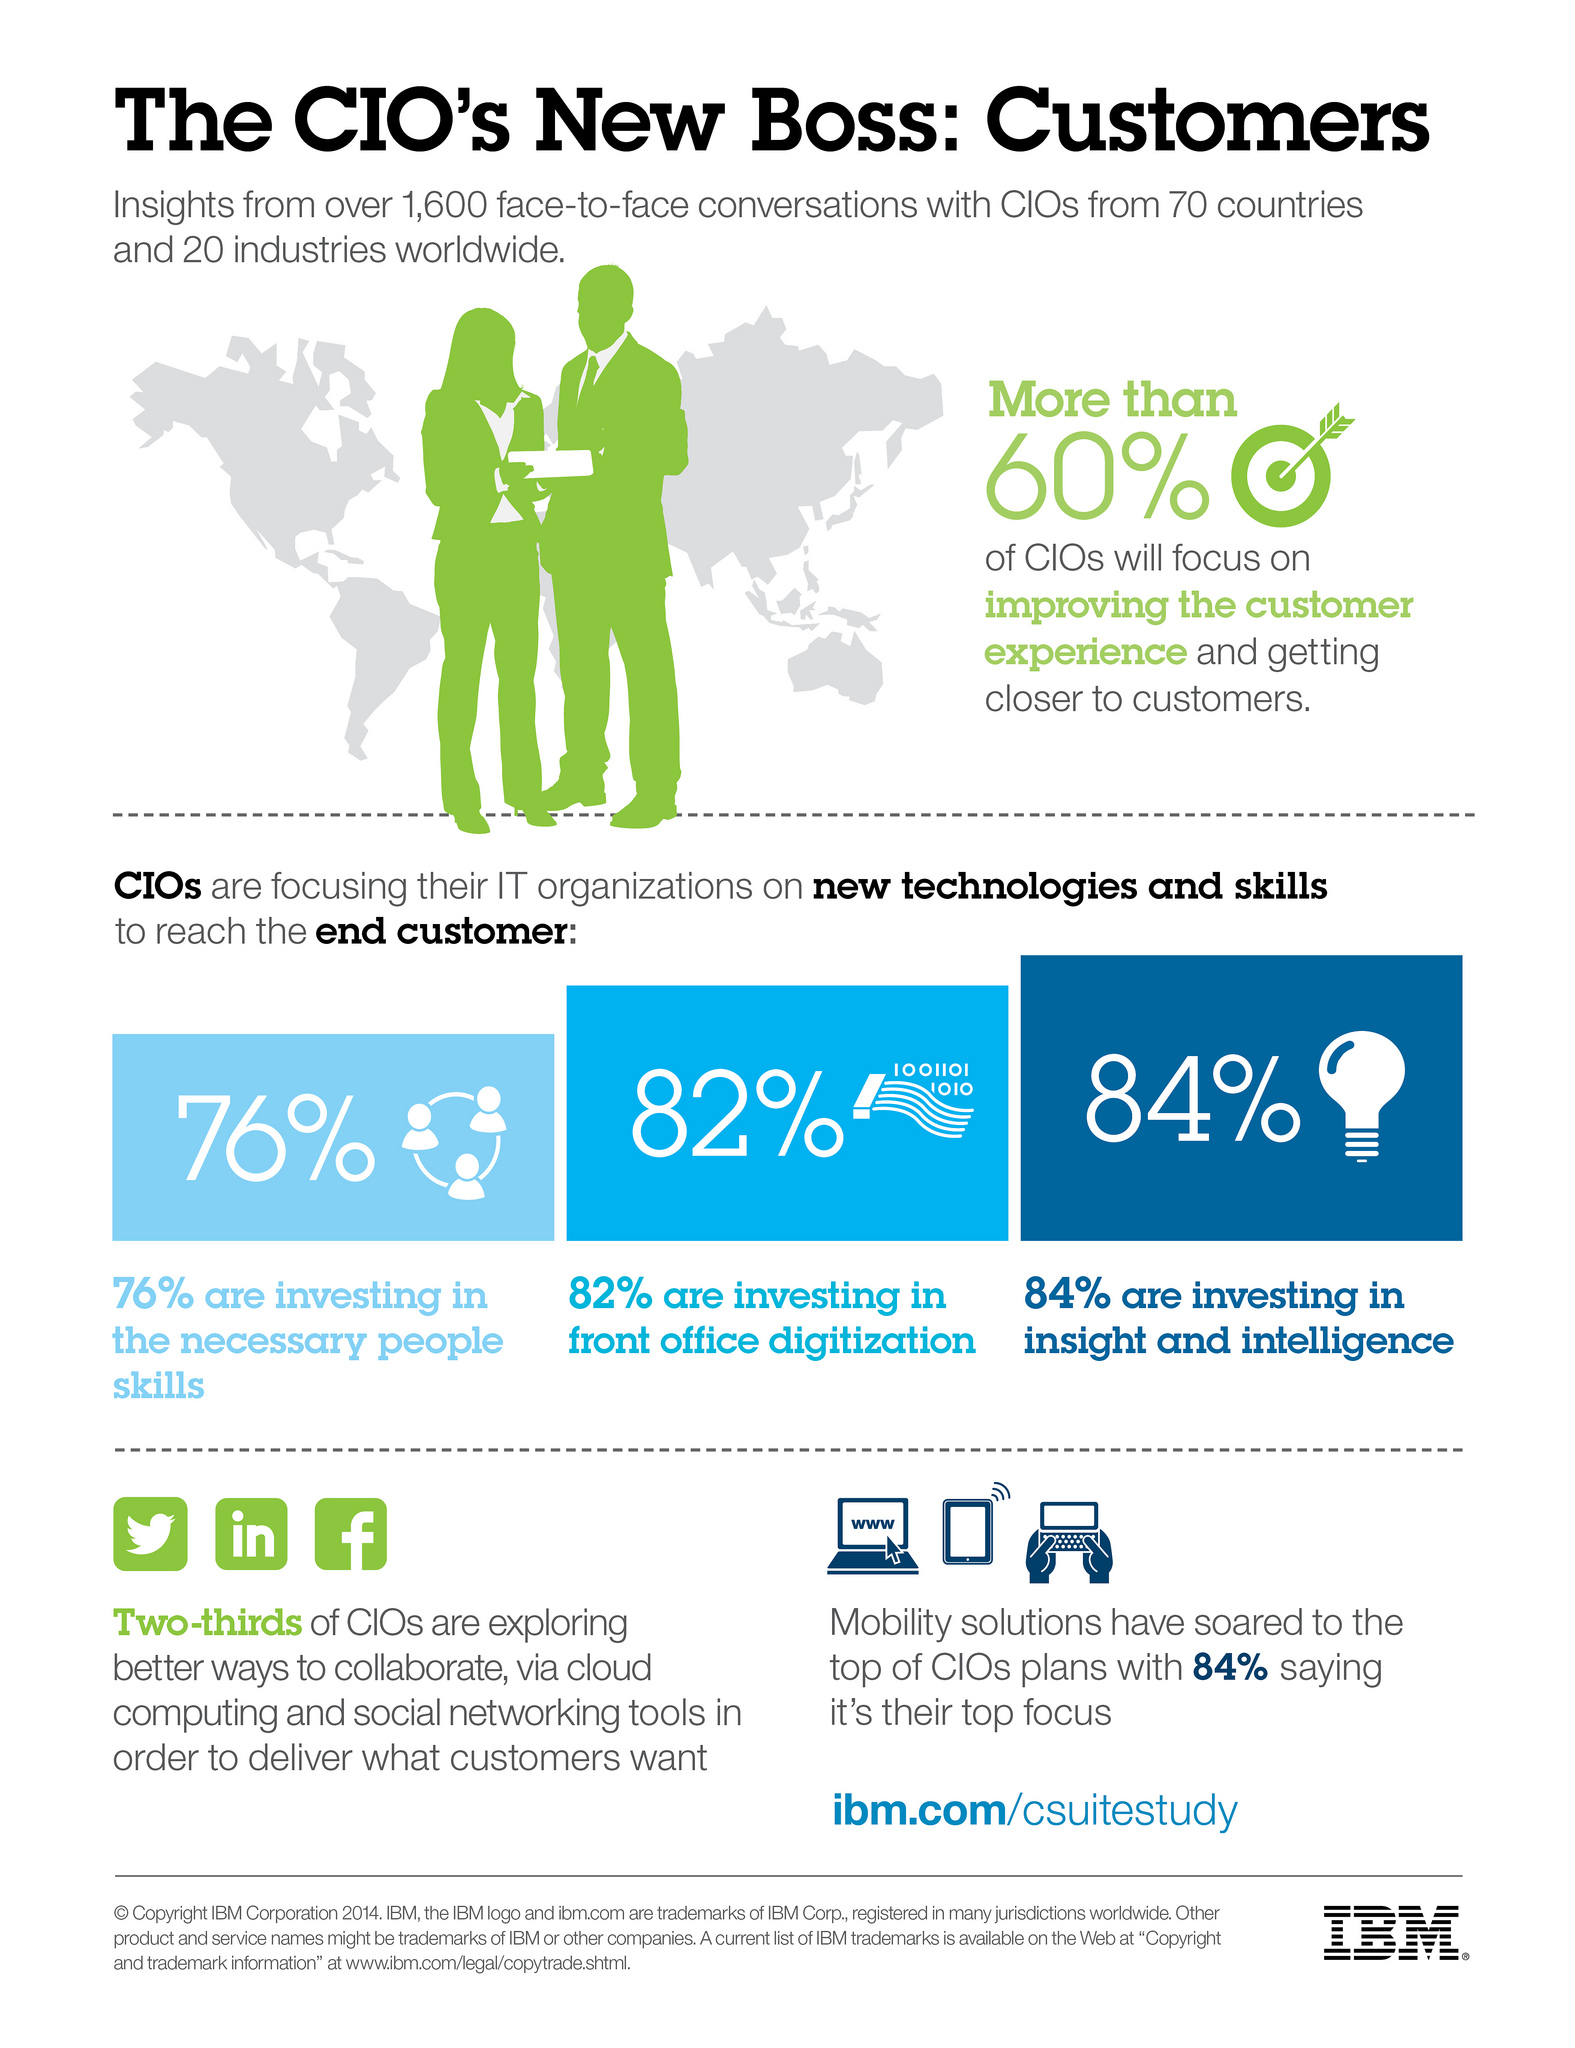 infographic  on CIOs new boss